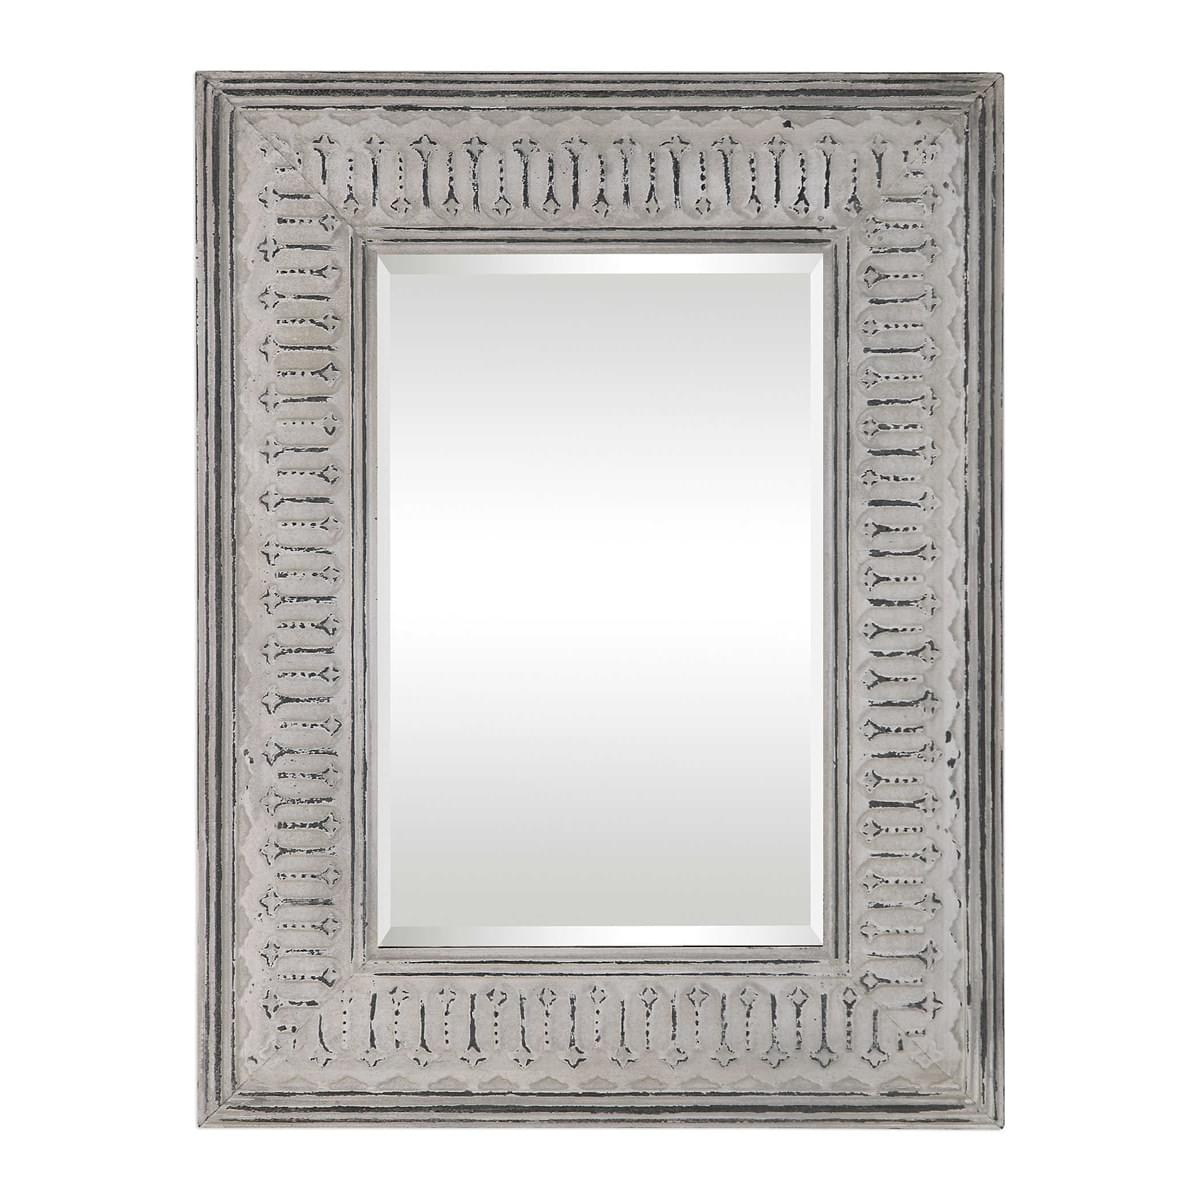 Uttermost Argenton Mirror at Mums Place Furniture Monterey CA